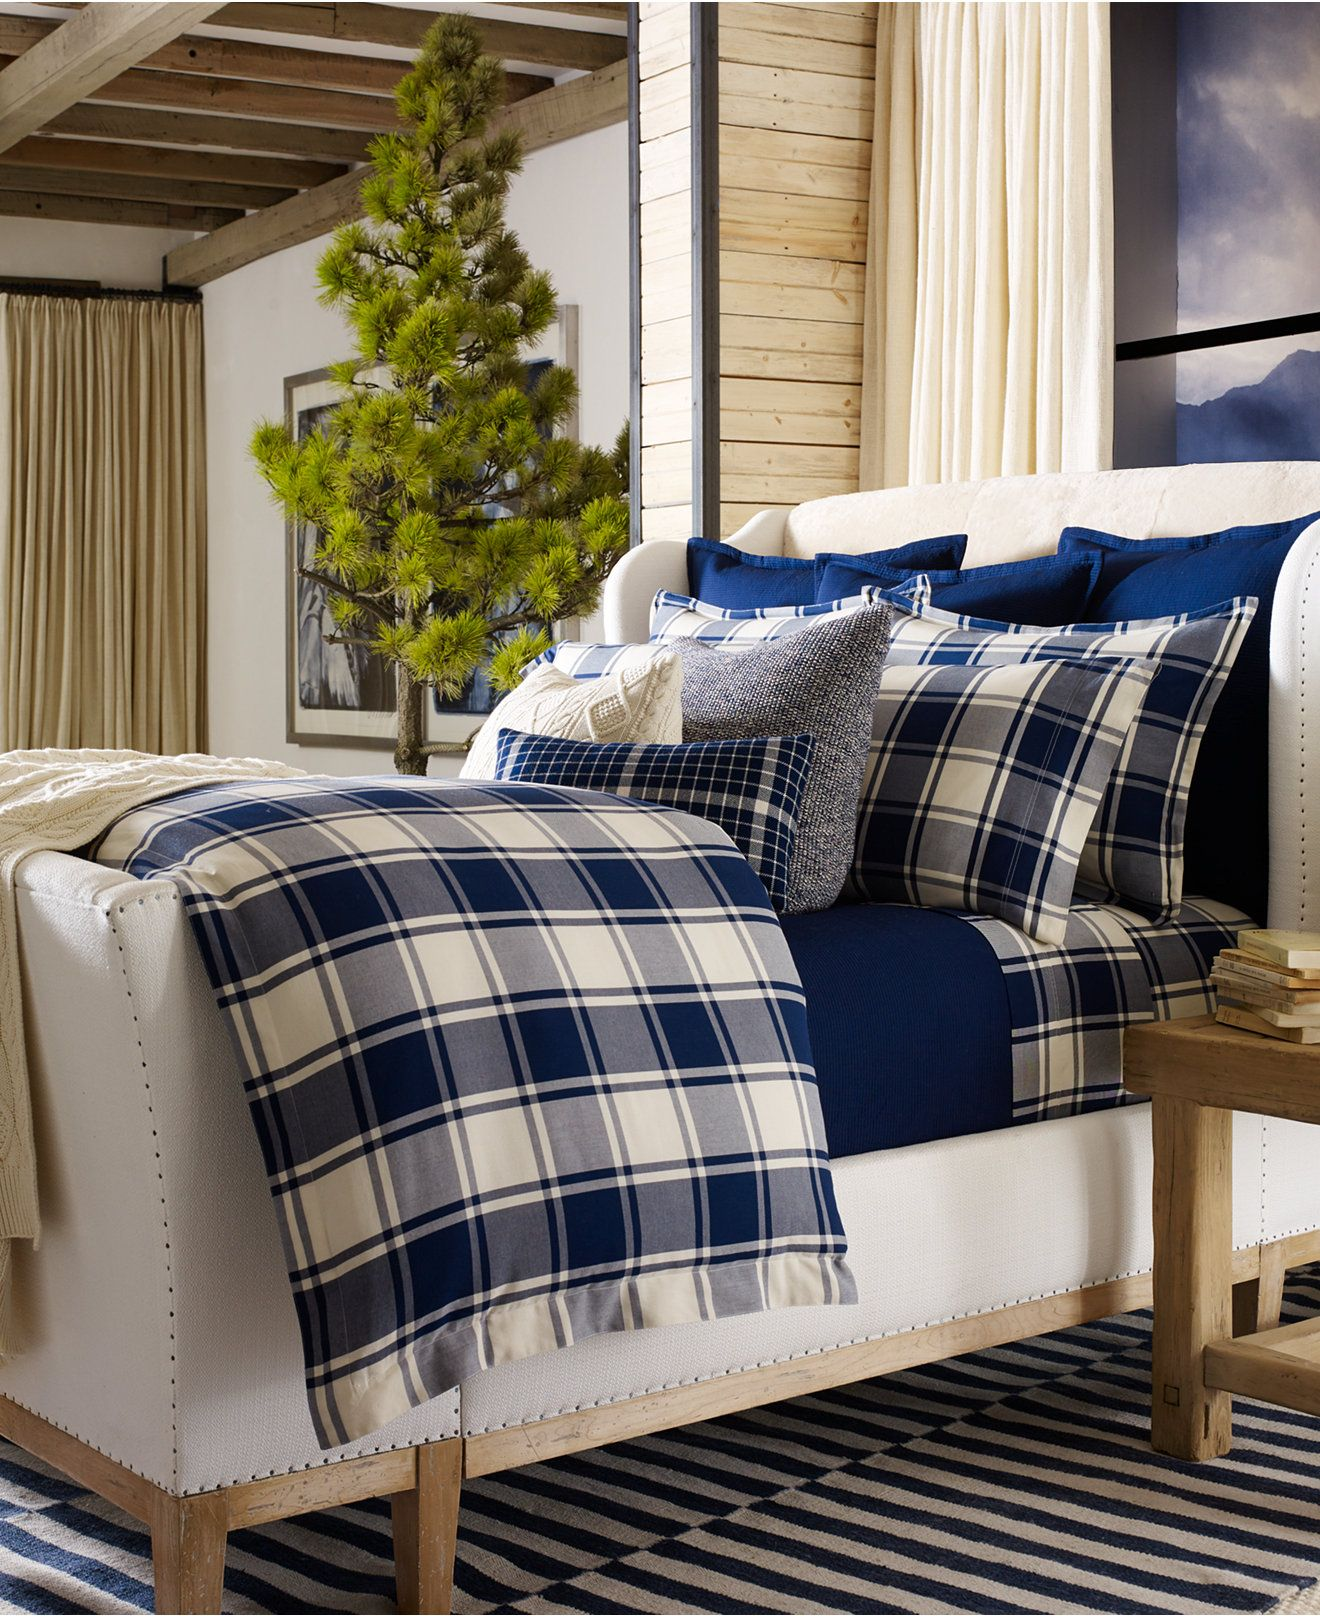 Ralph Lauren Winter Harbour Bedding Collection Bedding